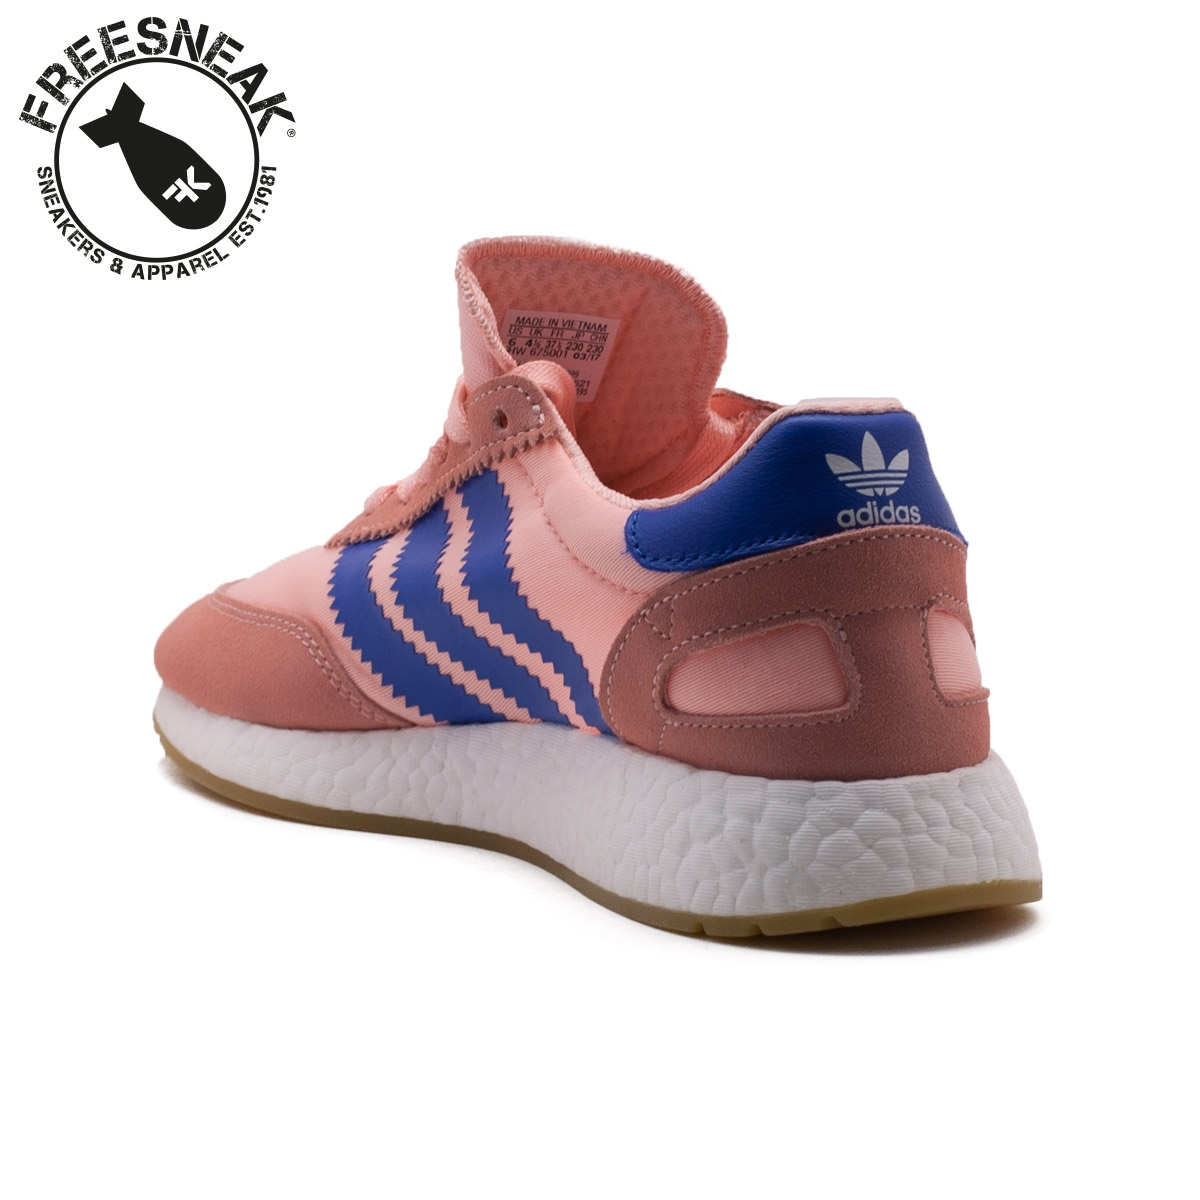 on sale 37bc7 d42c8 Adidas | Iniki Runner W Pink Blue | BA9999